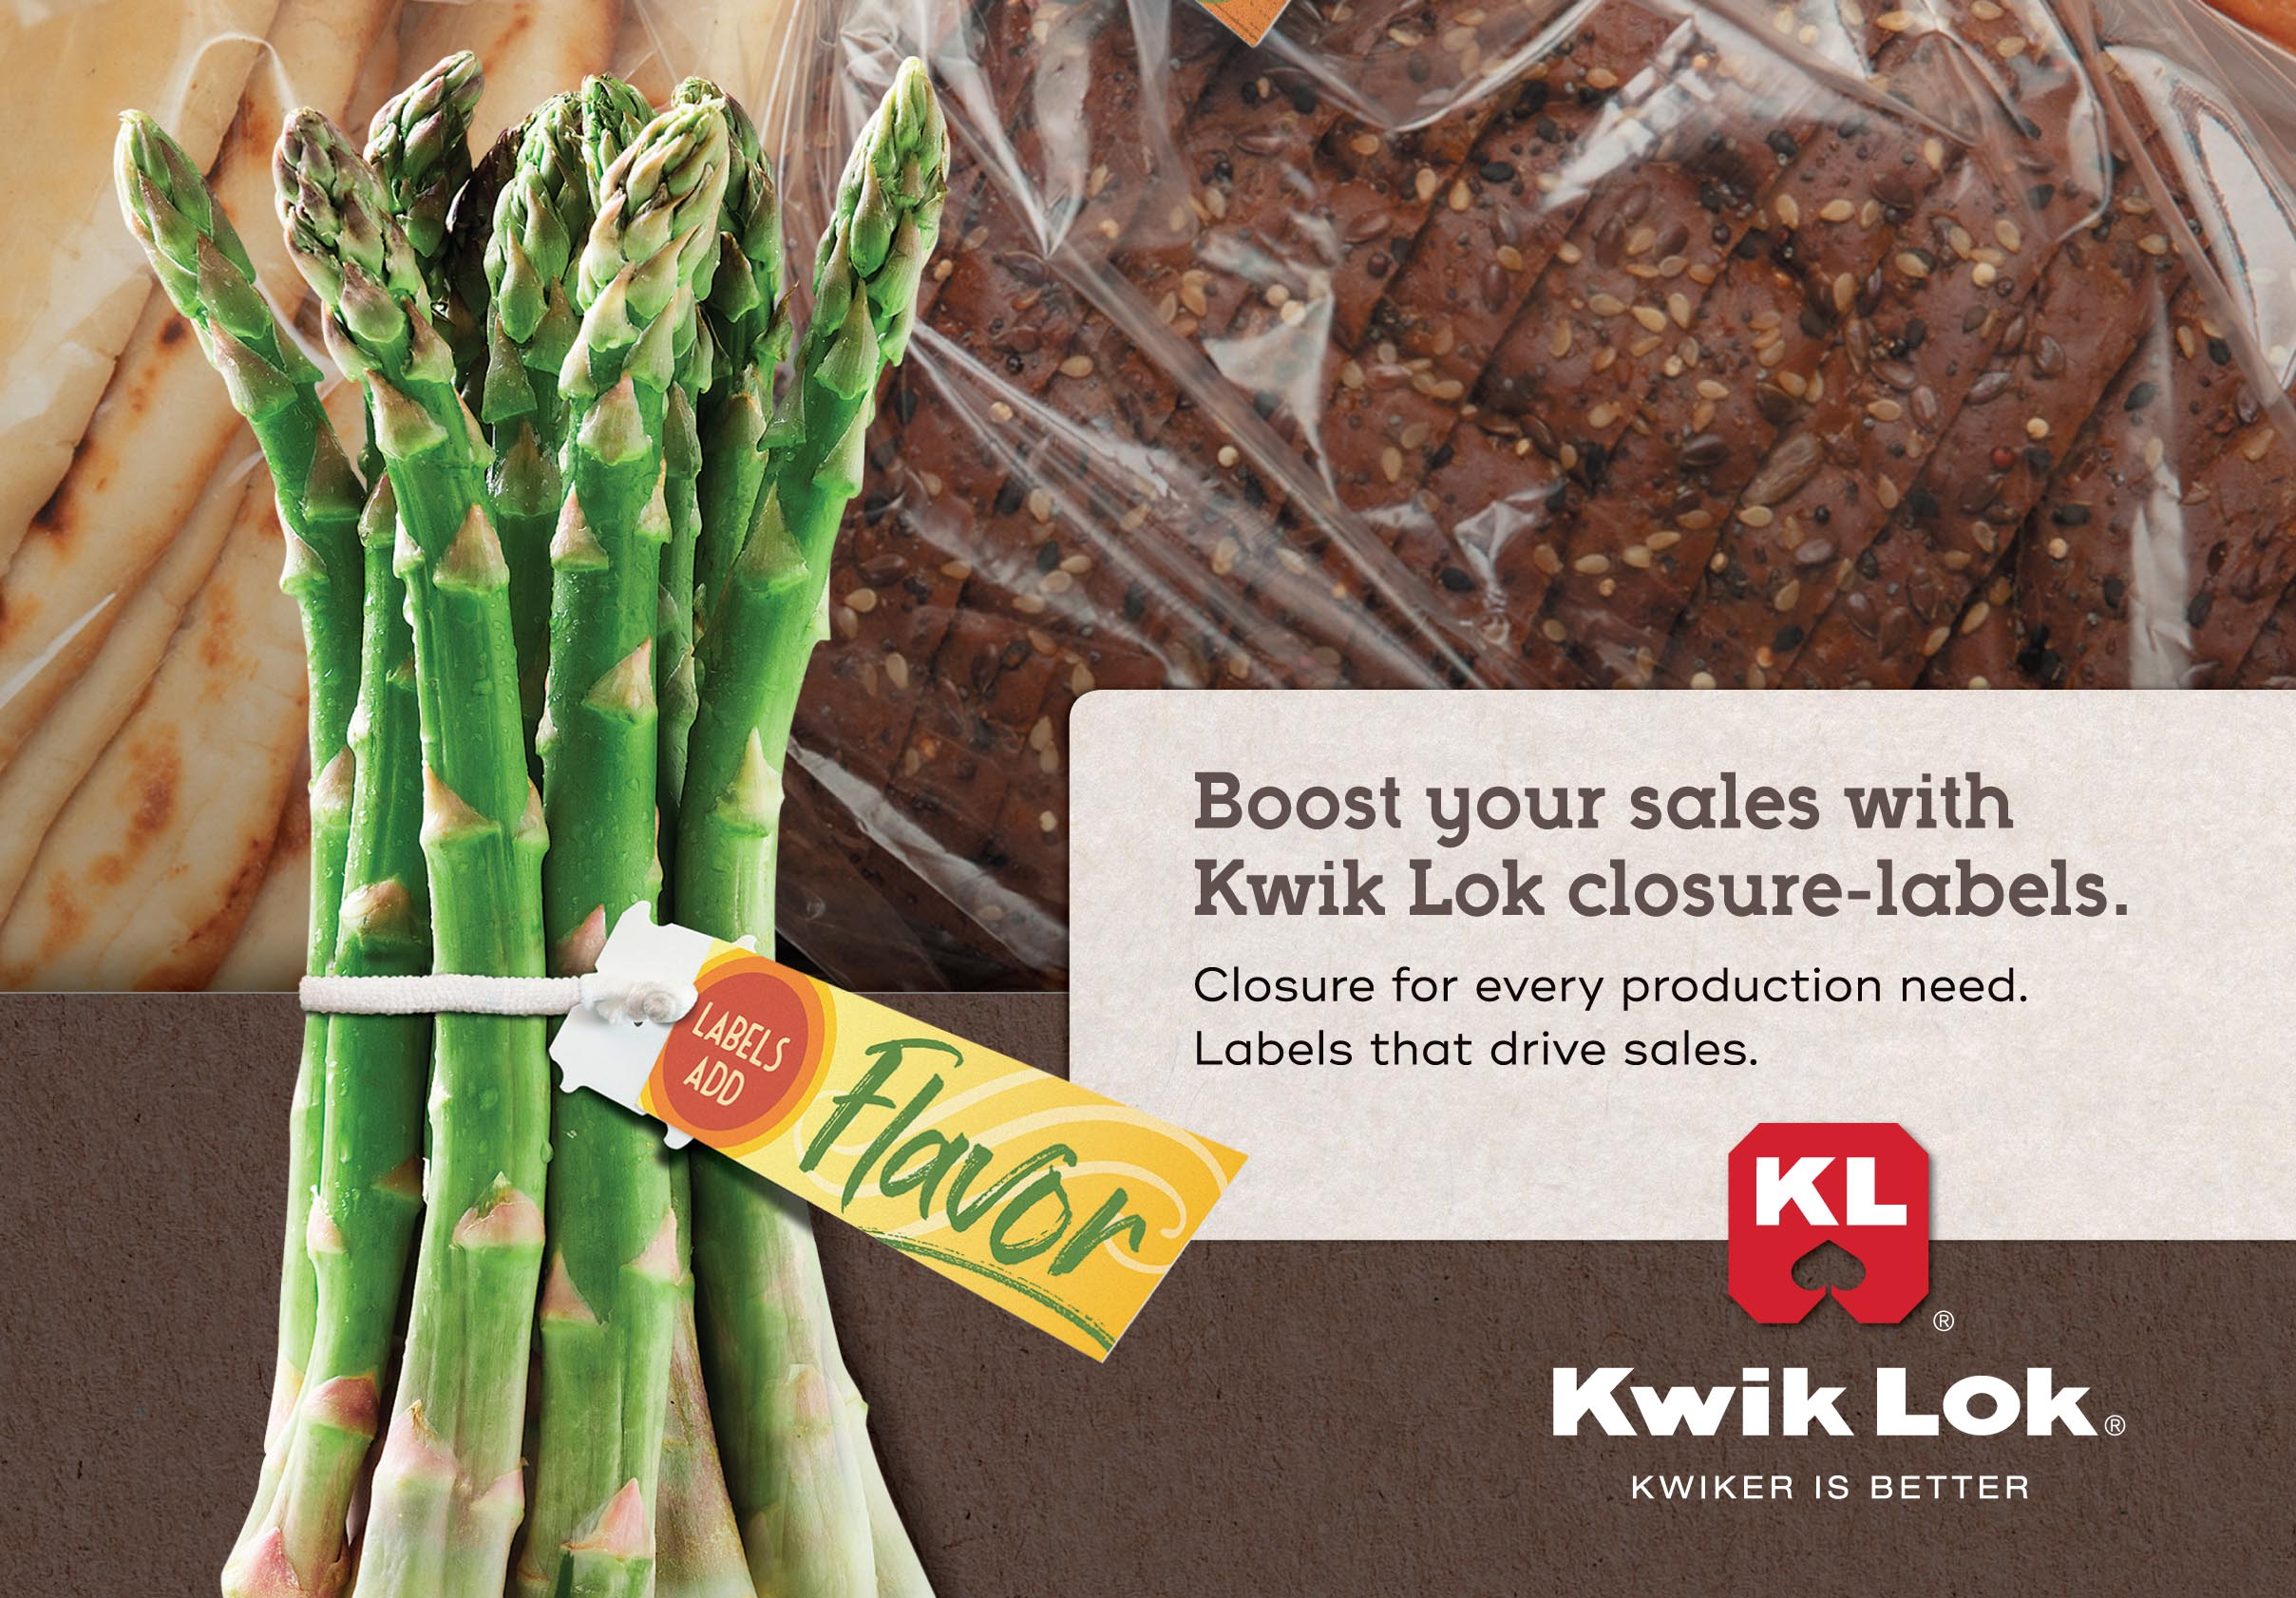 Boost your sales with Kwik-Lok closure - labels